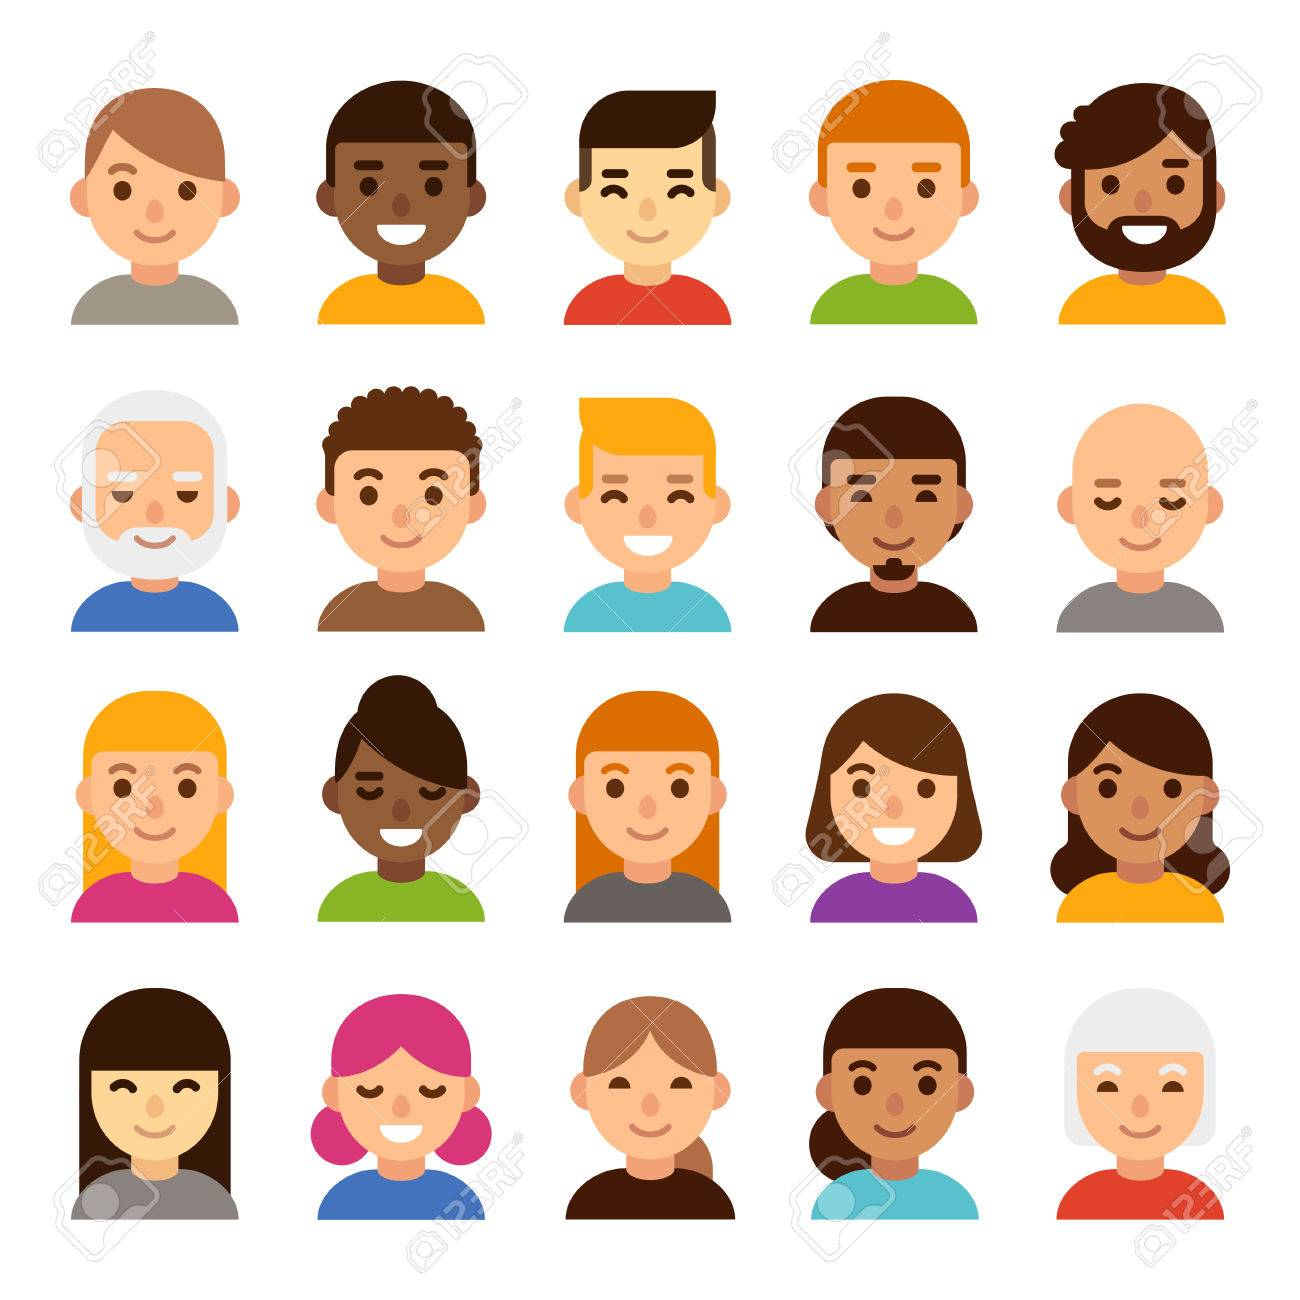 Set of diverse male and female avatars, simple flat cartoon style. Cute and minimalistic people faces, vector illustration. - 71507613